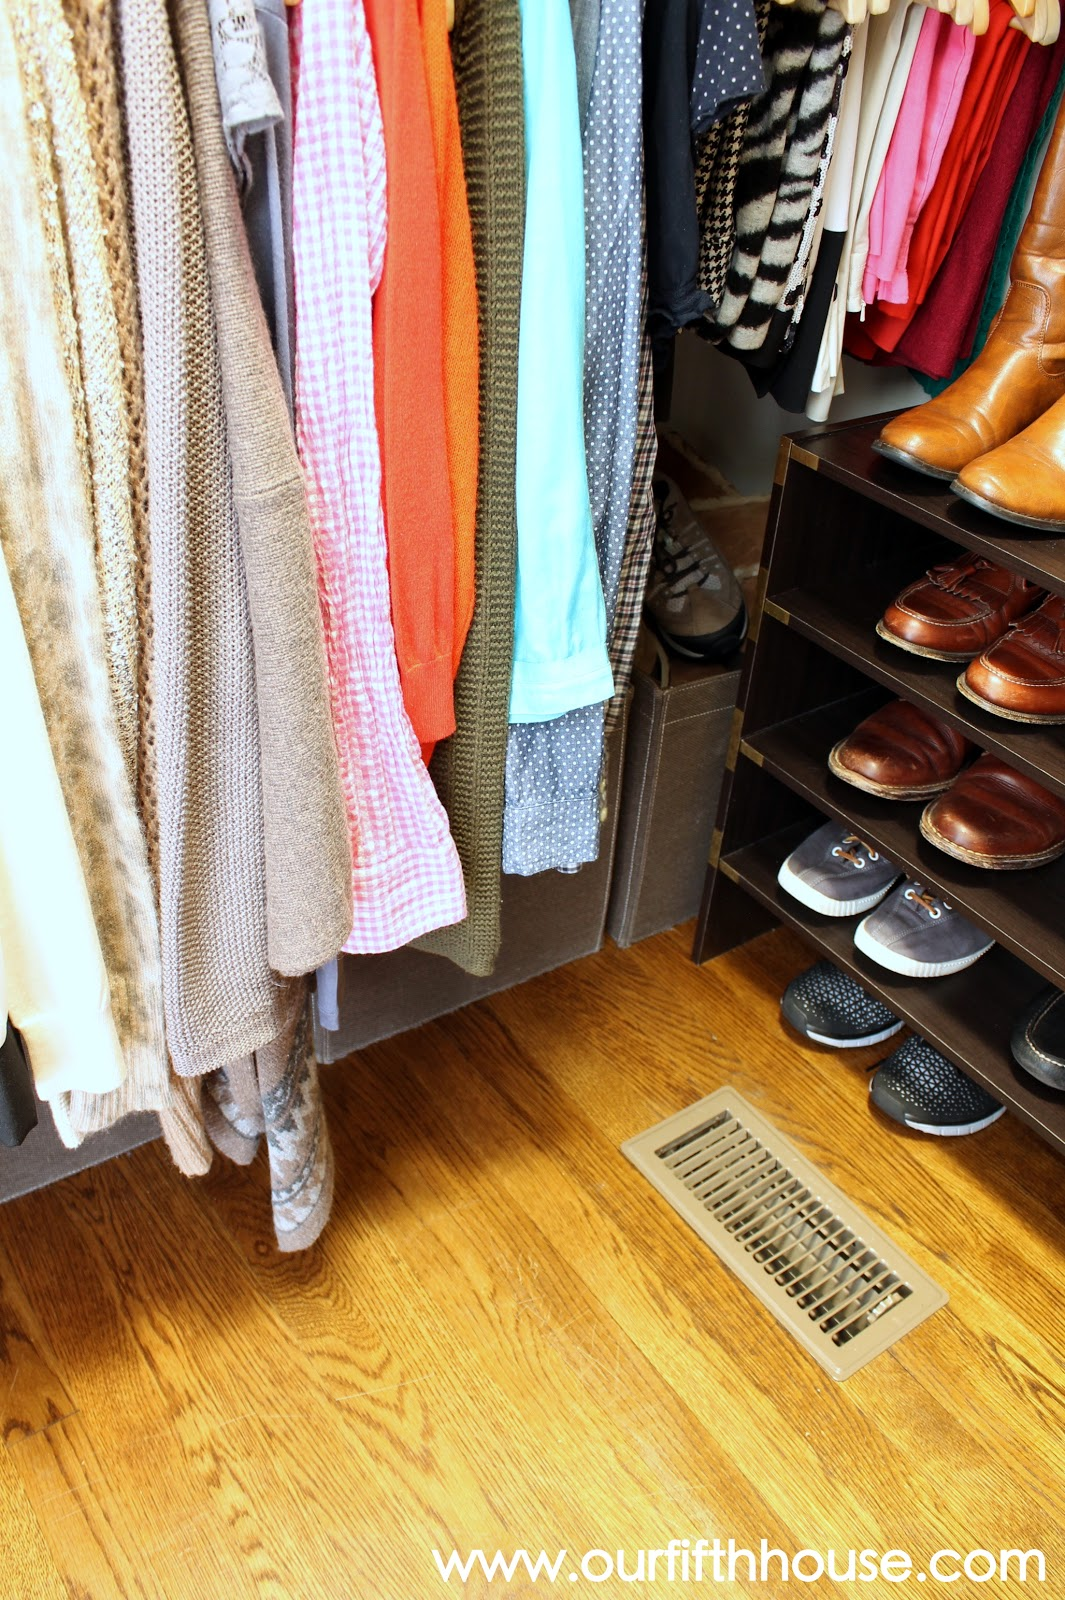 Clothes on bathroom floor images amp pictures becuo